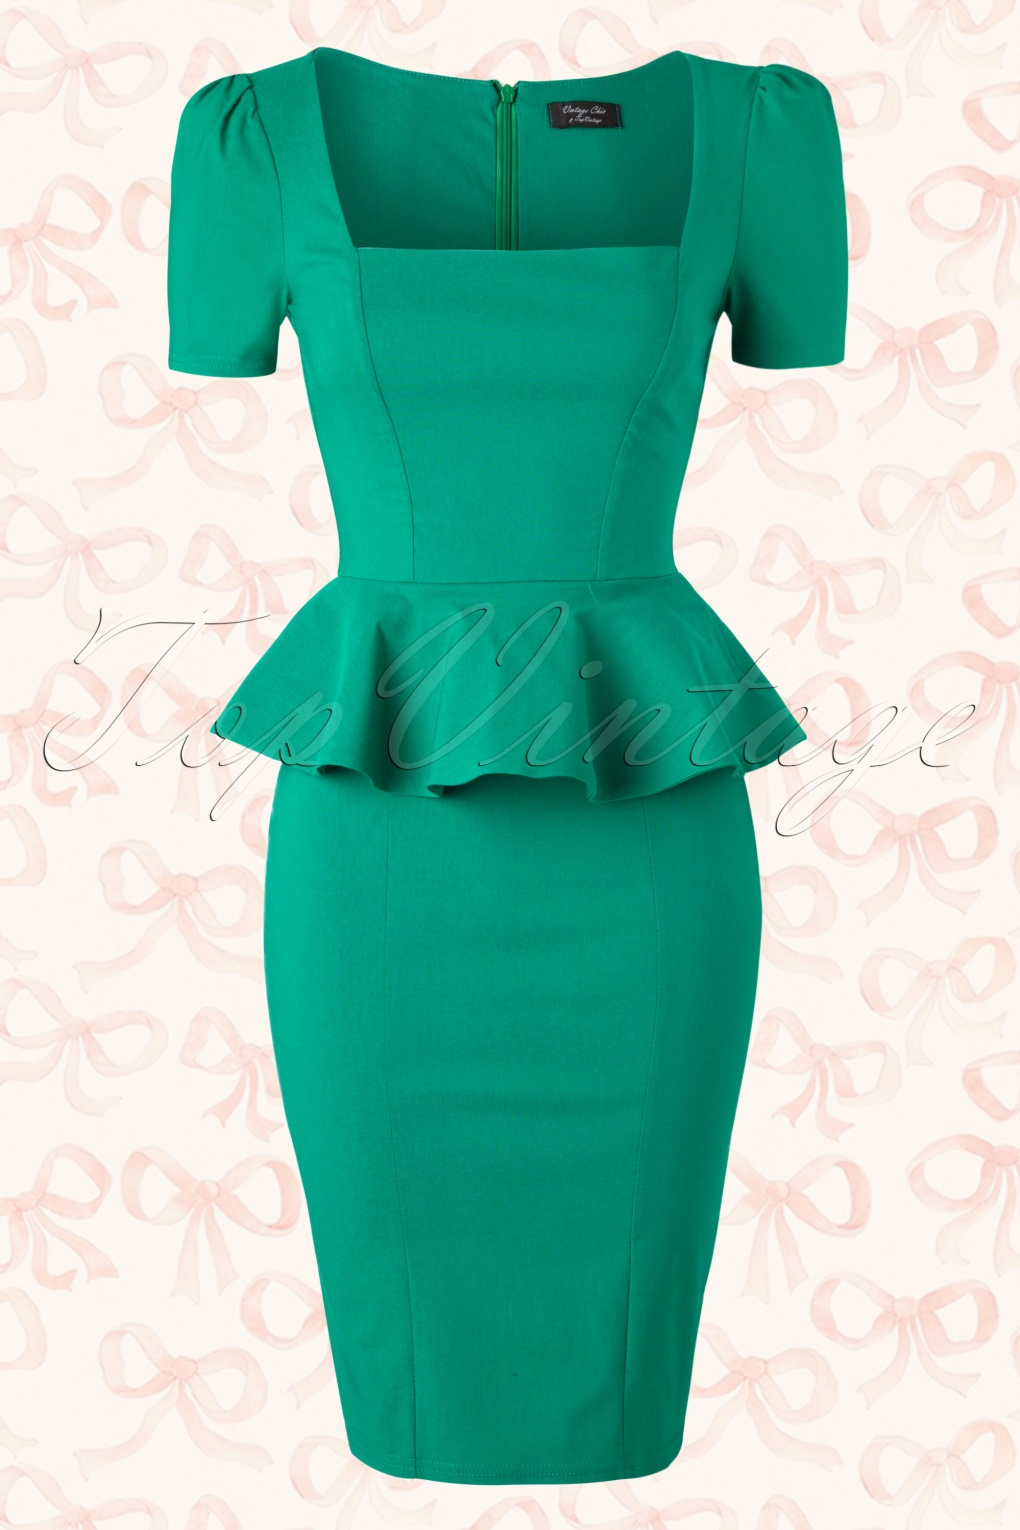 Where to buy peplum dresses